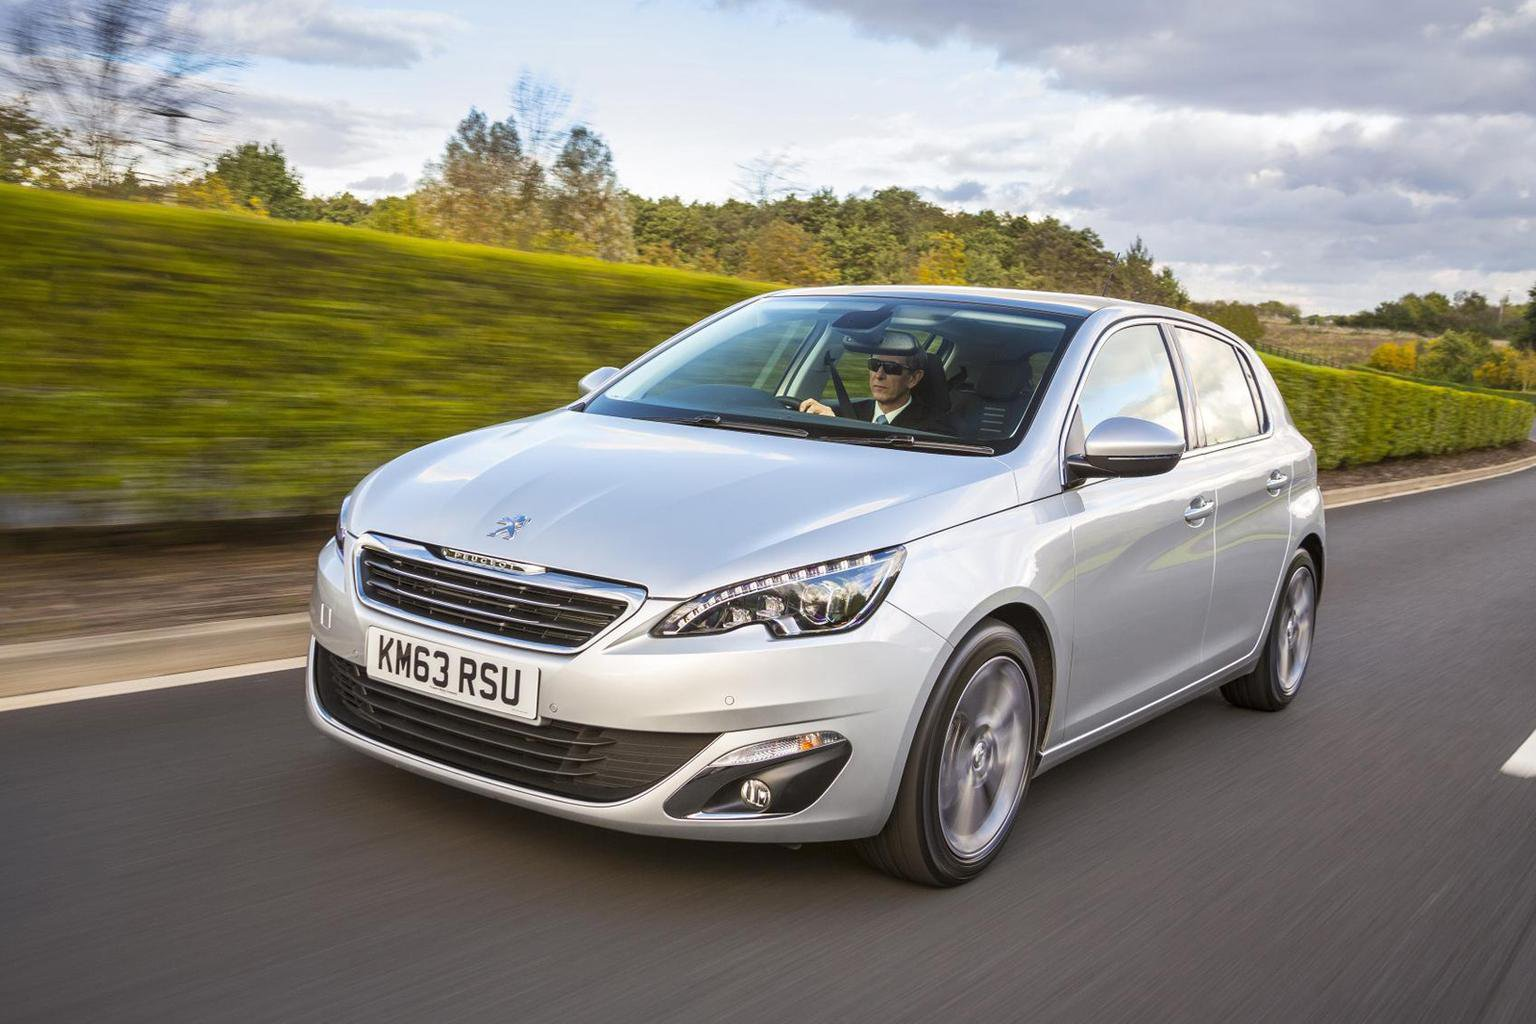 Save up to 3k on the new Peugeot 308